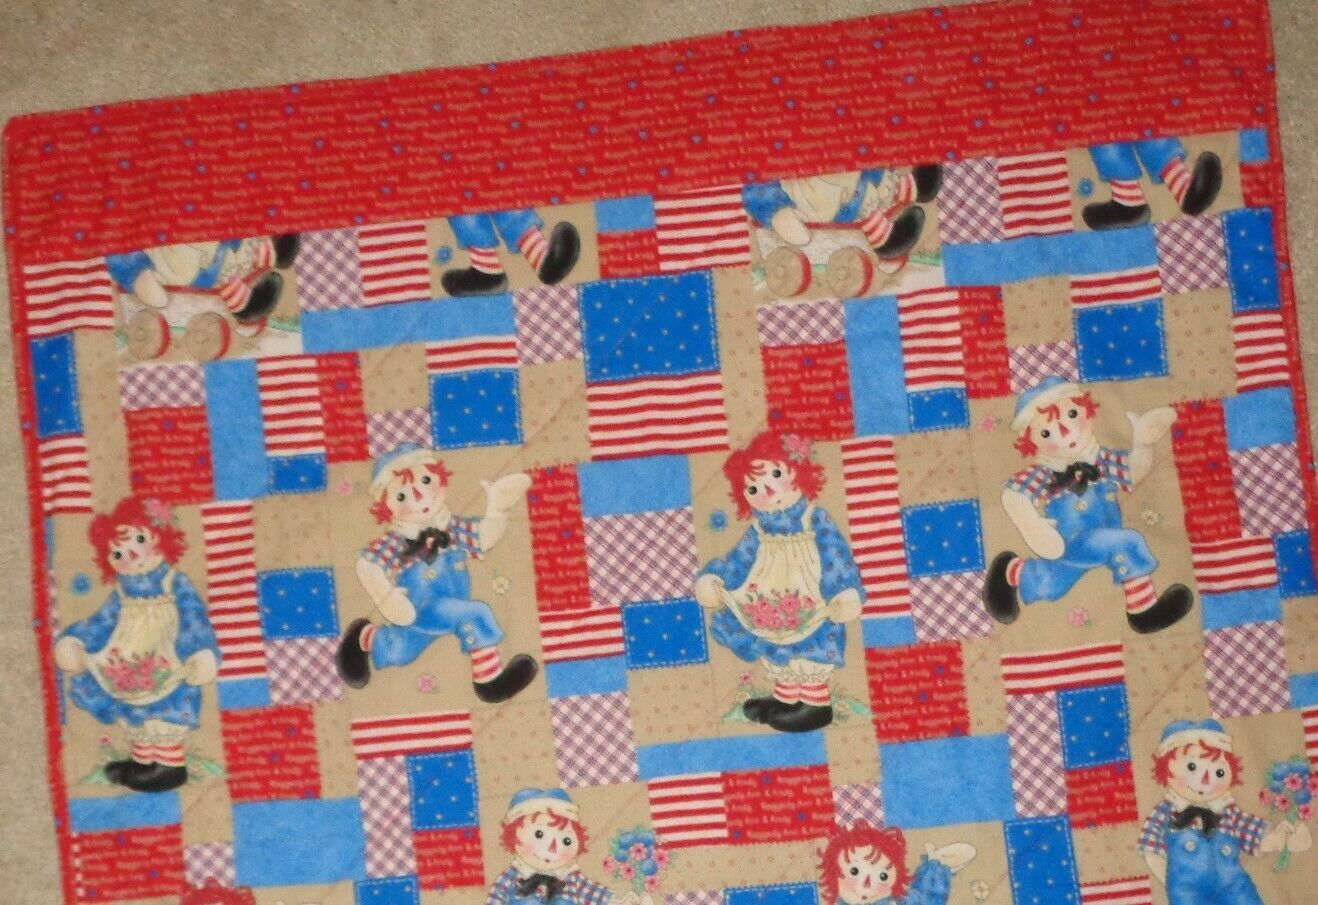 Baby Toddler Quilt Raggedy Ann Andy Quilt Blanket NEW 45 X 40 Handmade - $24.99